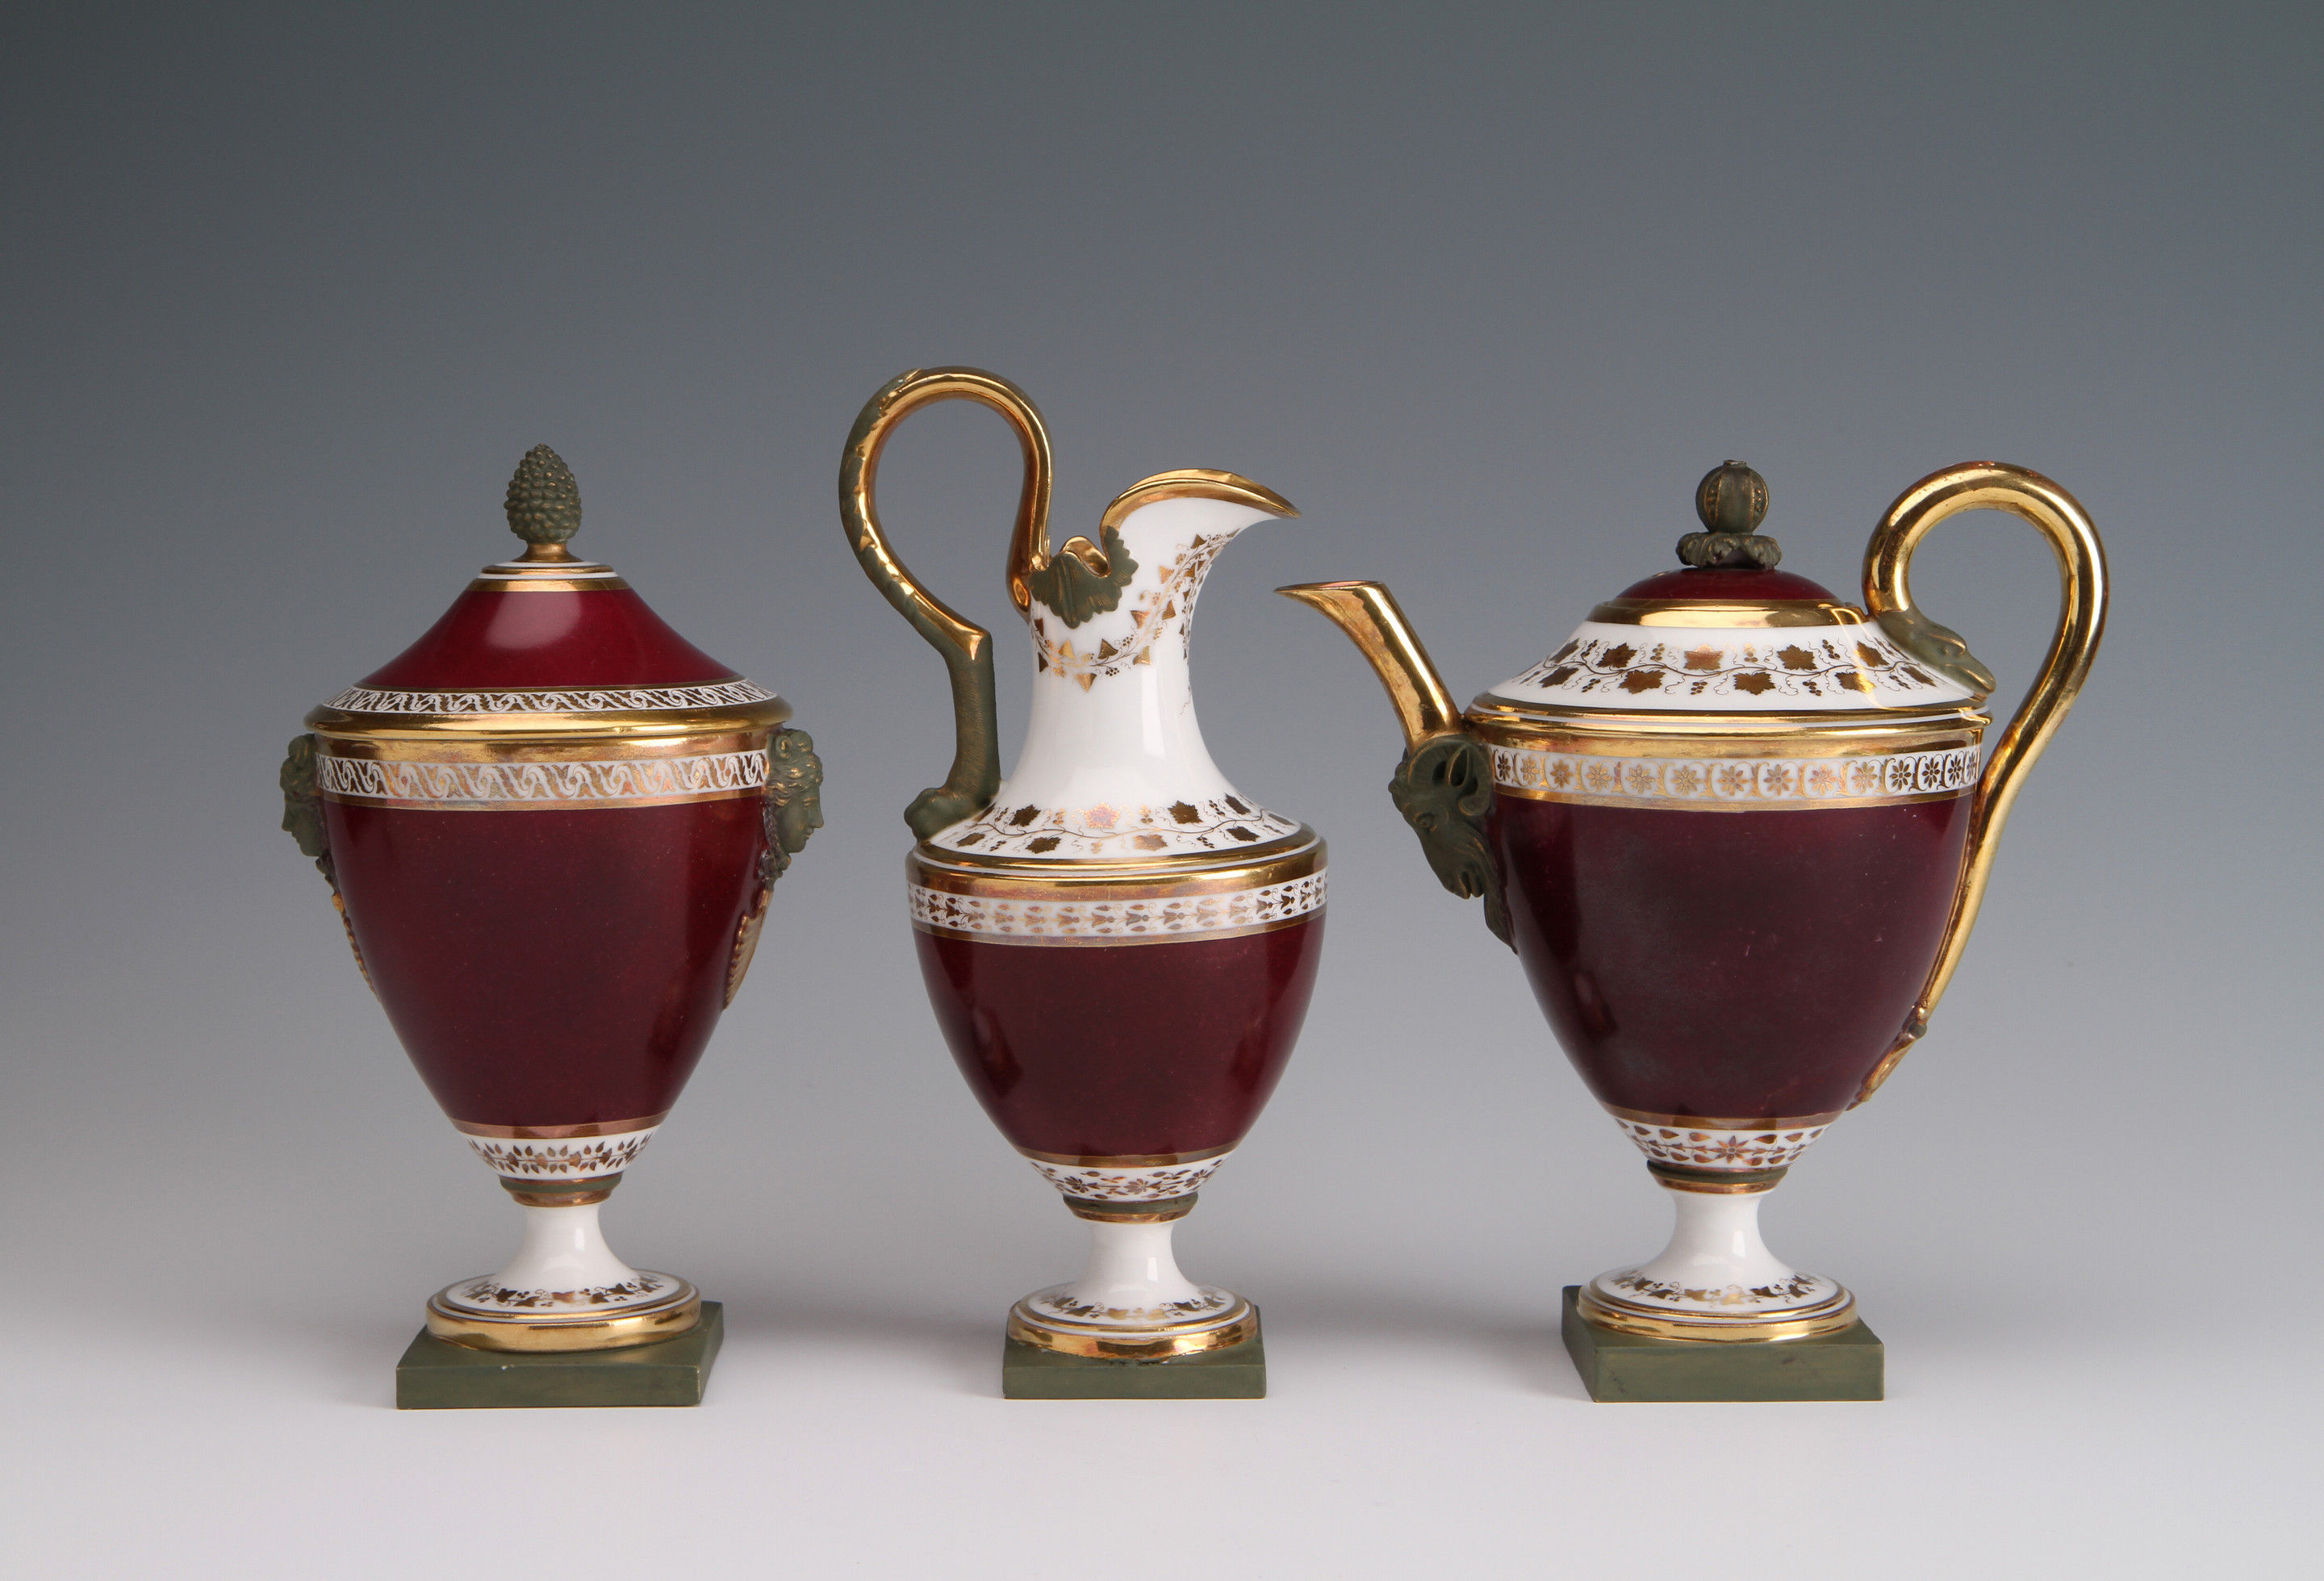 A Paris Porcelain Guérhard & Dihl part Tea Service